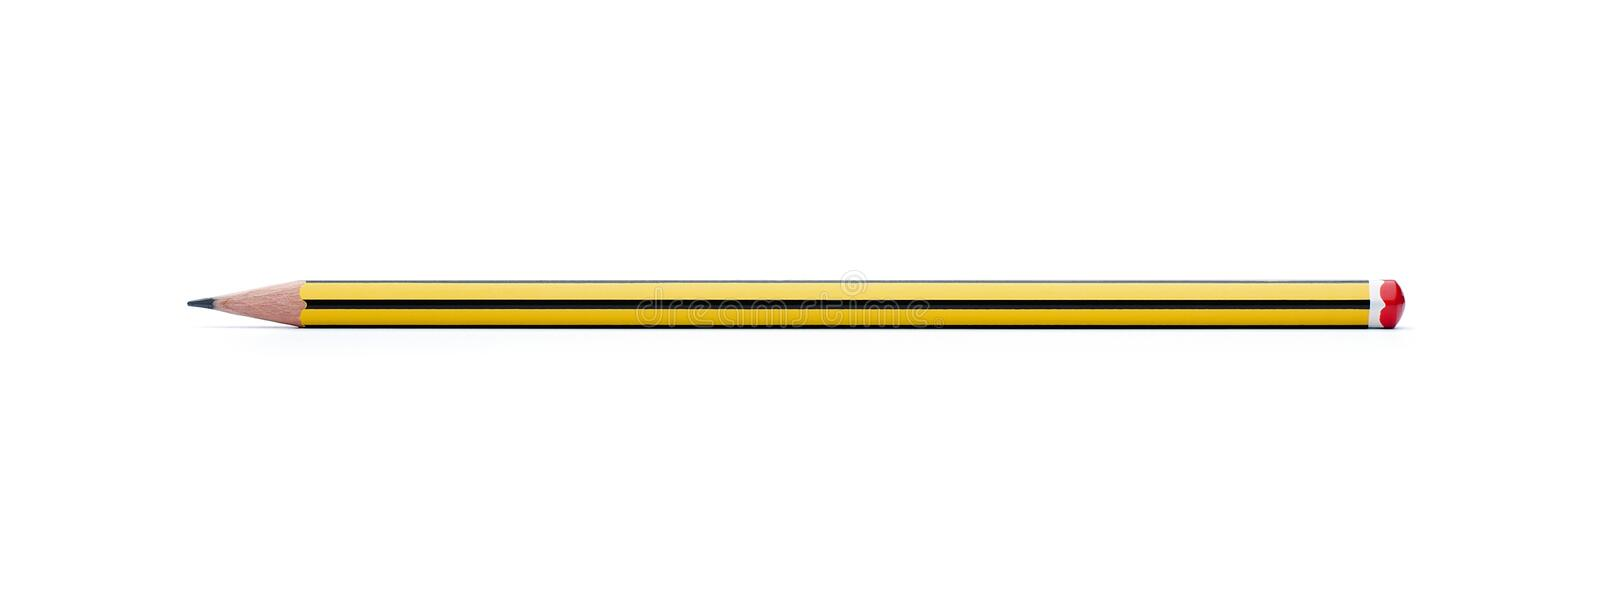 Pencil With Clipping Path Stock Images